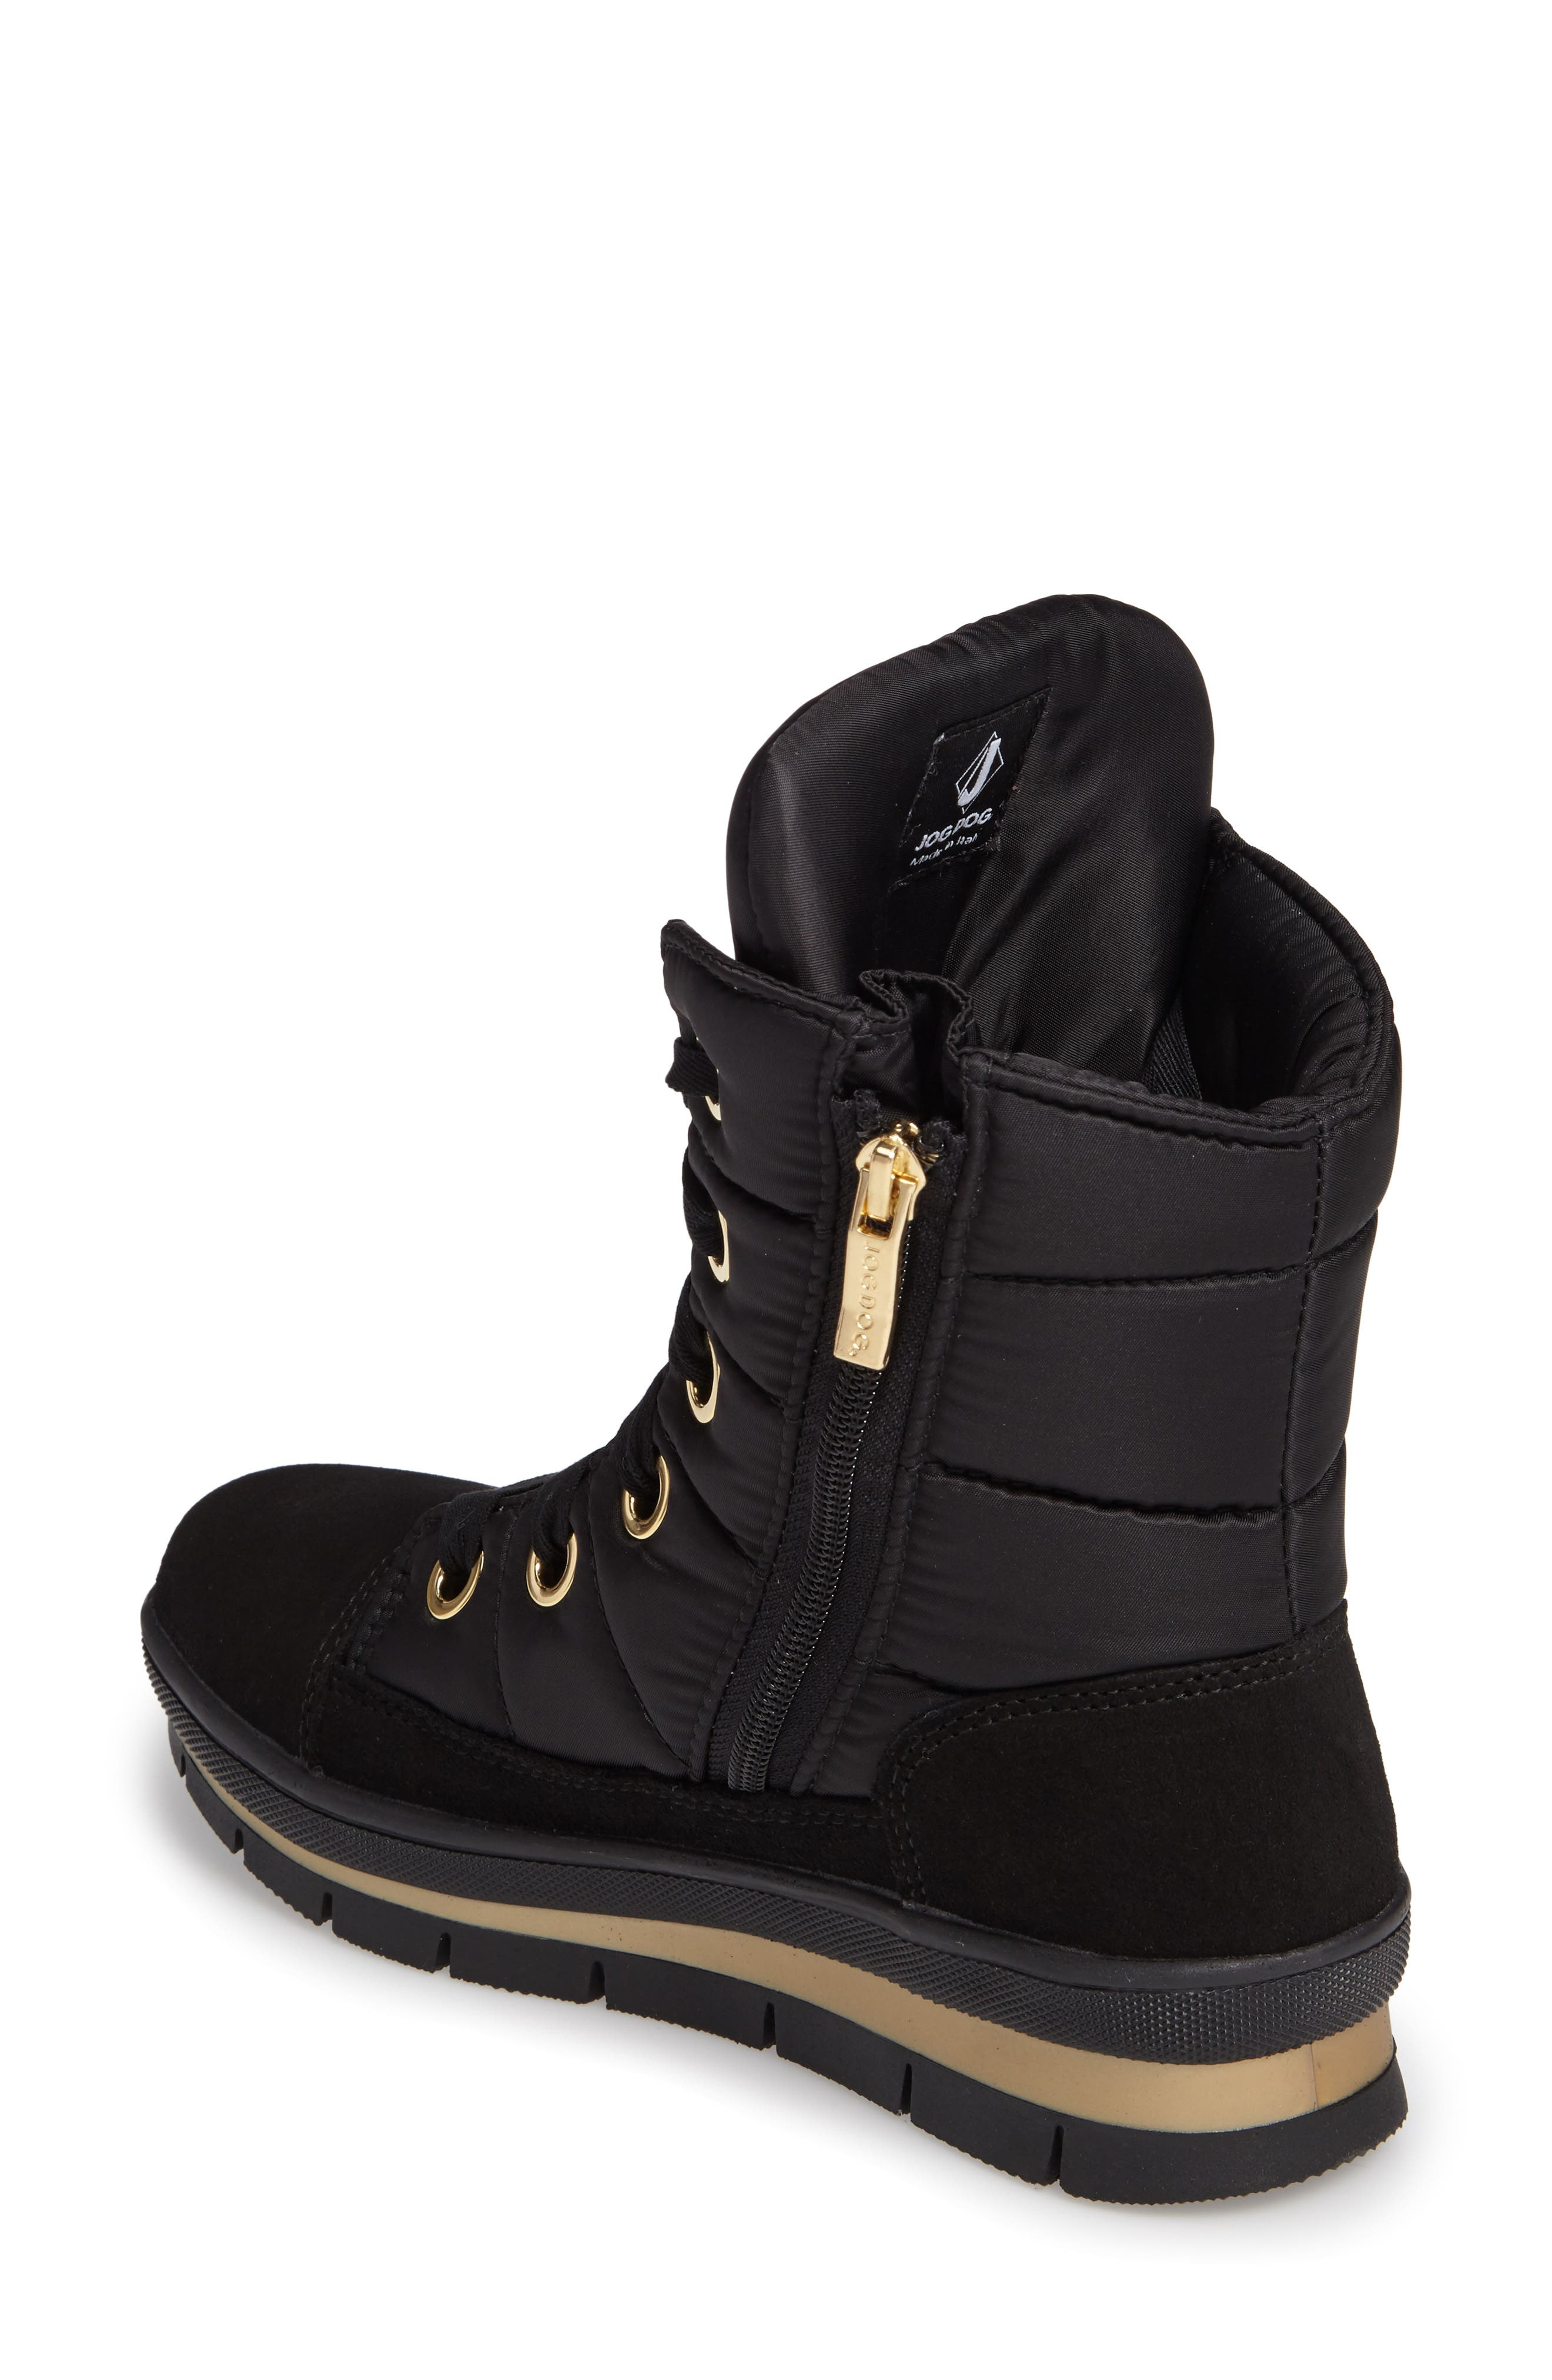 Verbier Waterproof Boot,                             Alternate thumbnail 2, color,                             BLACK / GOLD SWAROVSKI